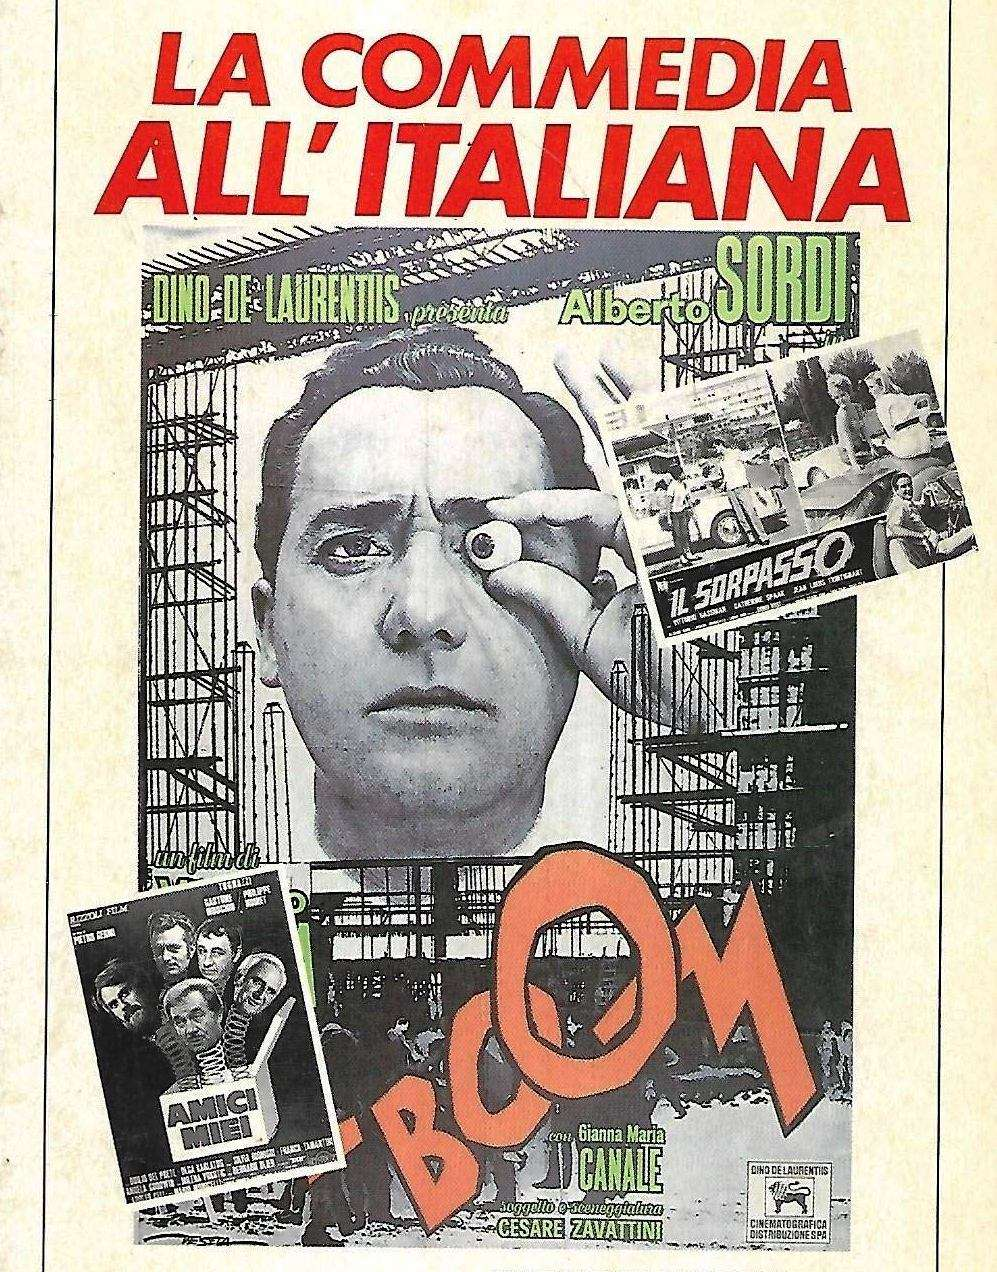 La commedia all'italiana